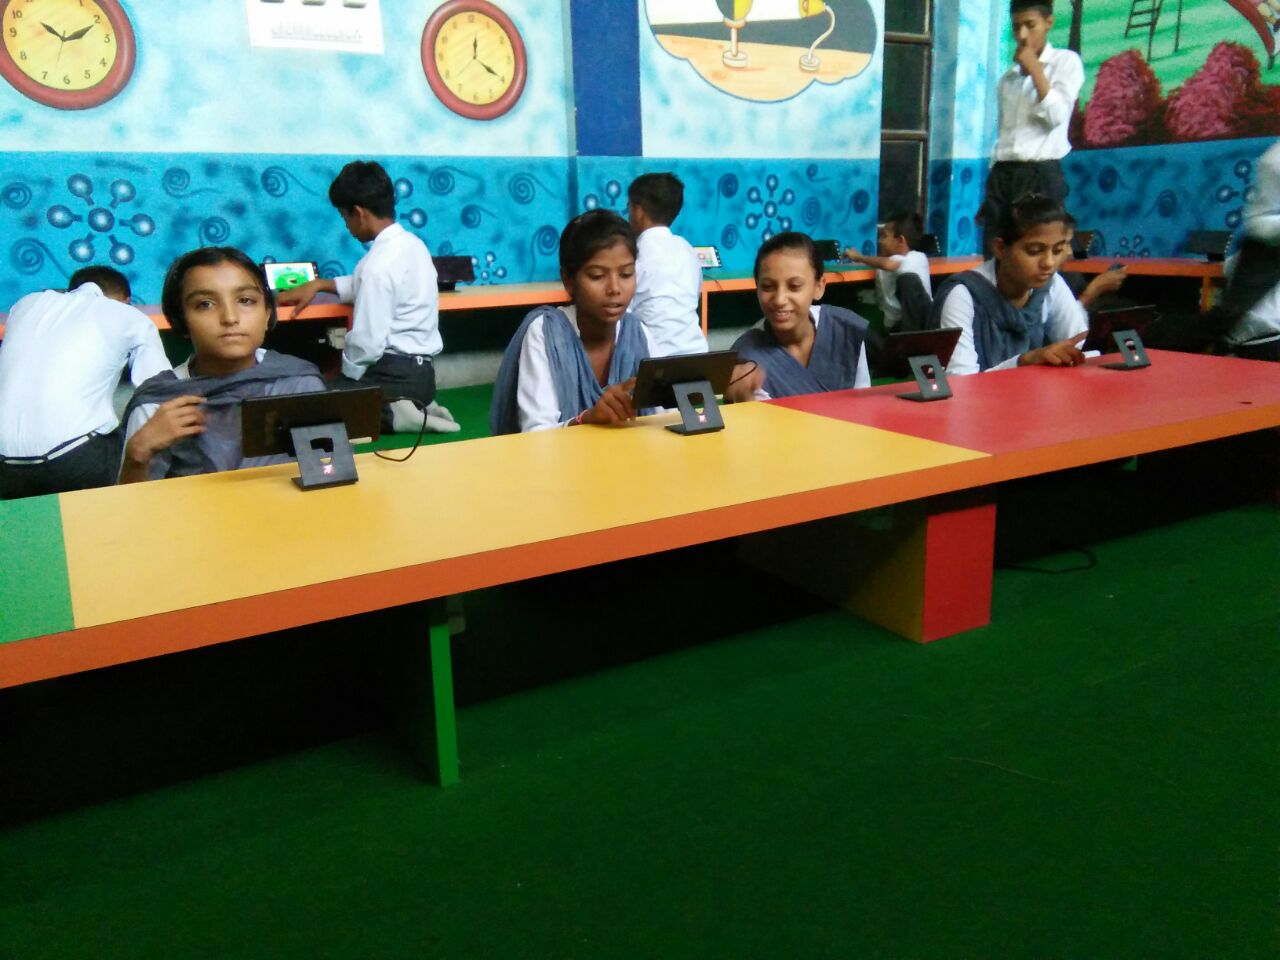 An Initiative to bridge the gap betweendifferently-abled and abled children through Education in Sirsa, Haryana